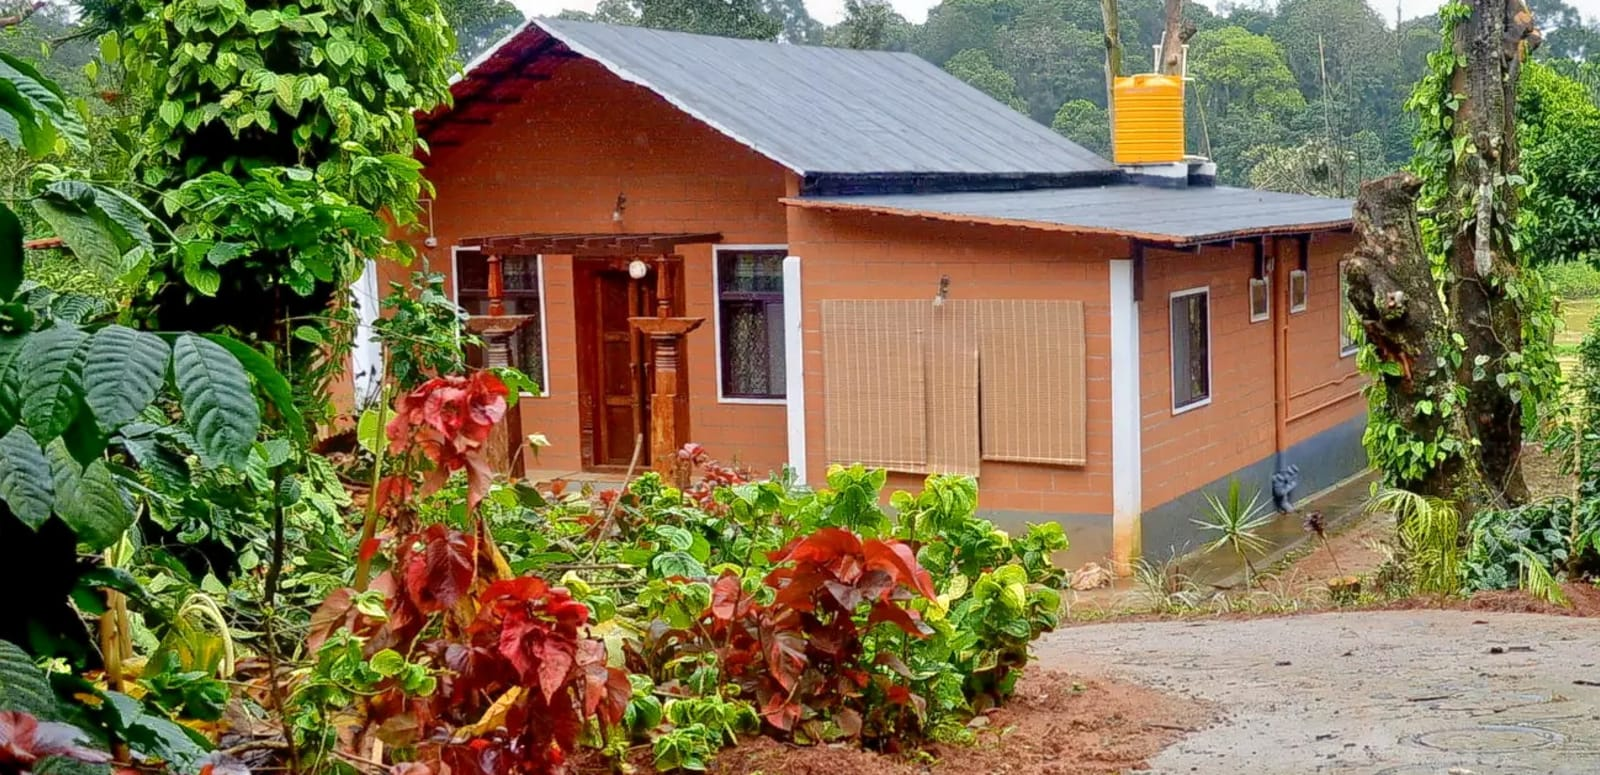 Homestay Amidst Coffee Plantation Coorg - Amazing Coffee Estate Stays In Coorg